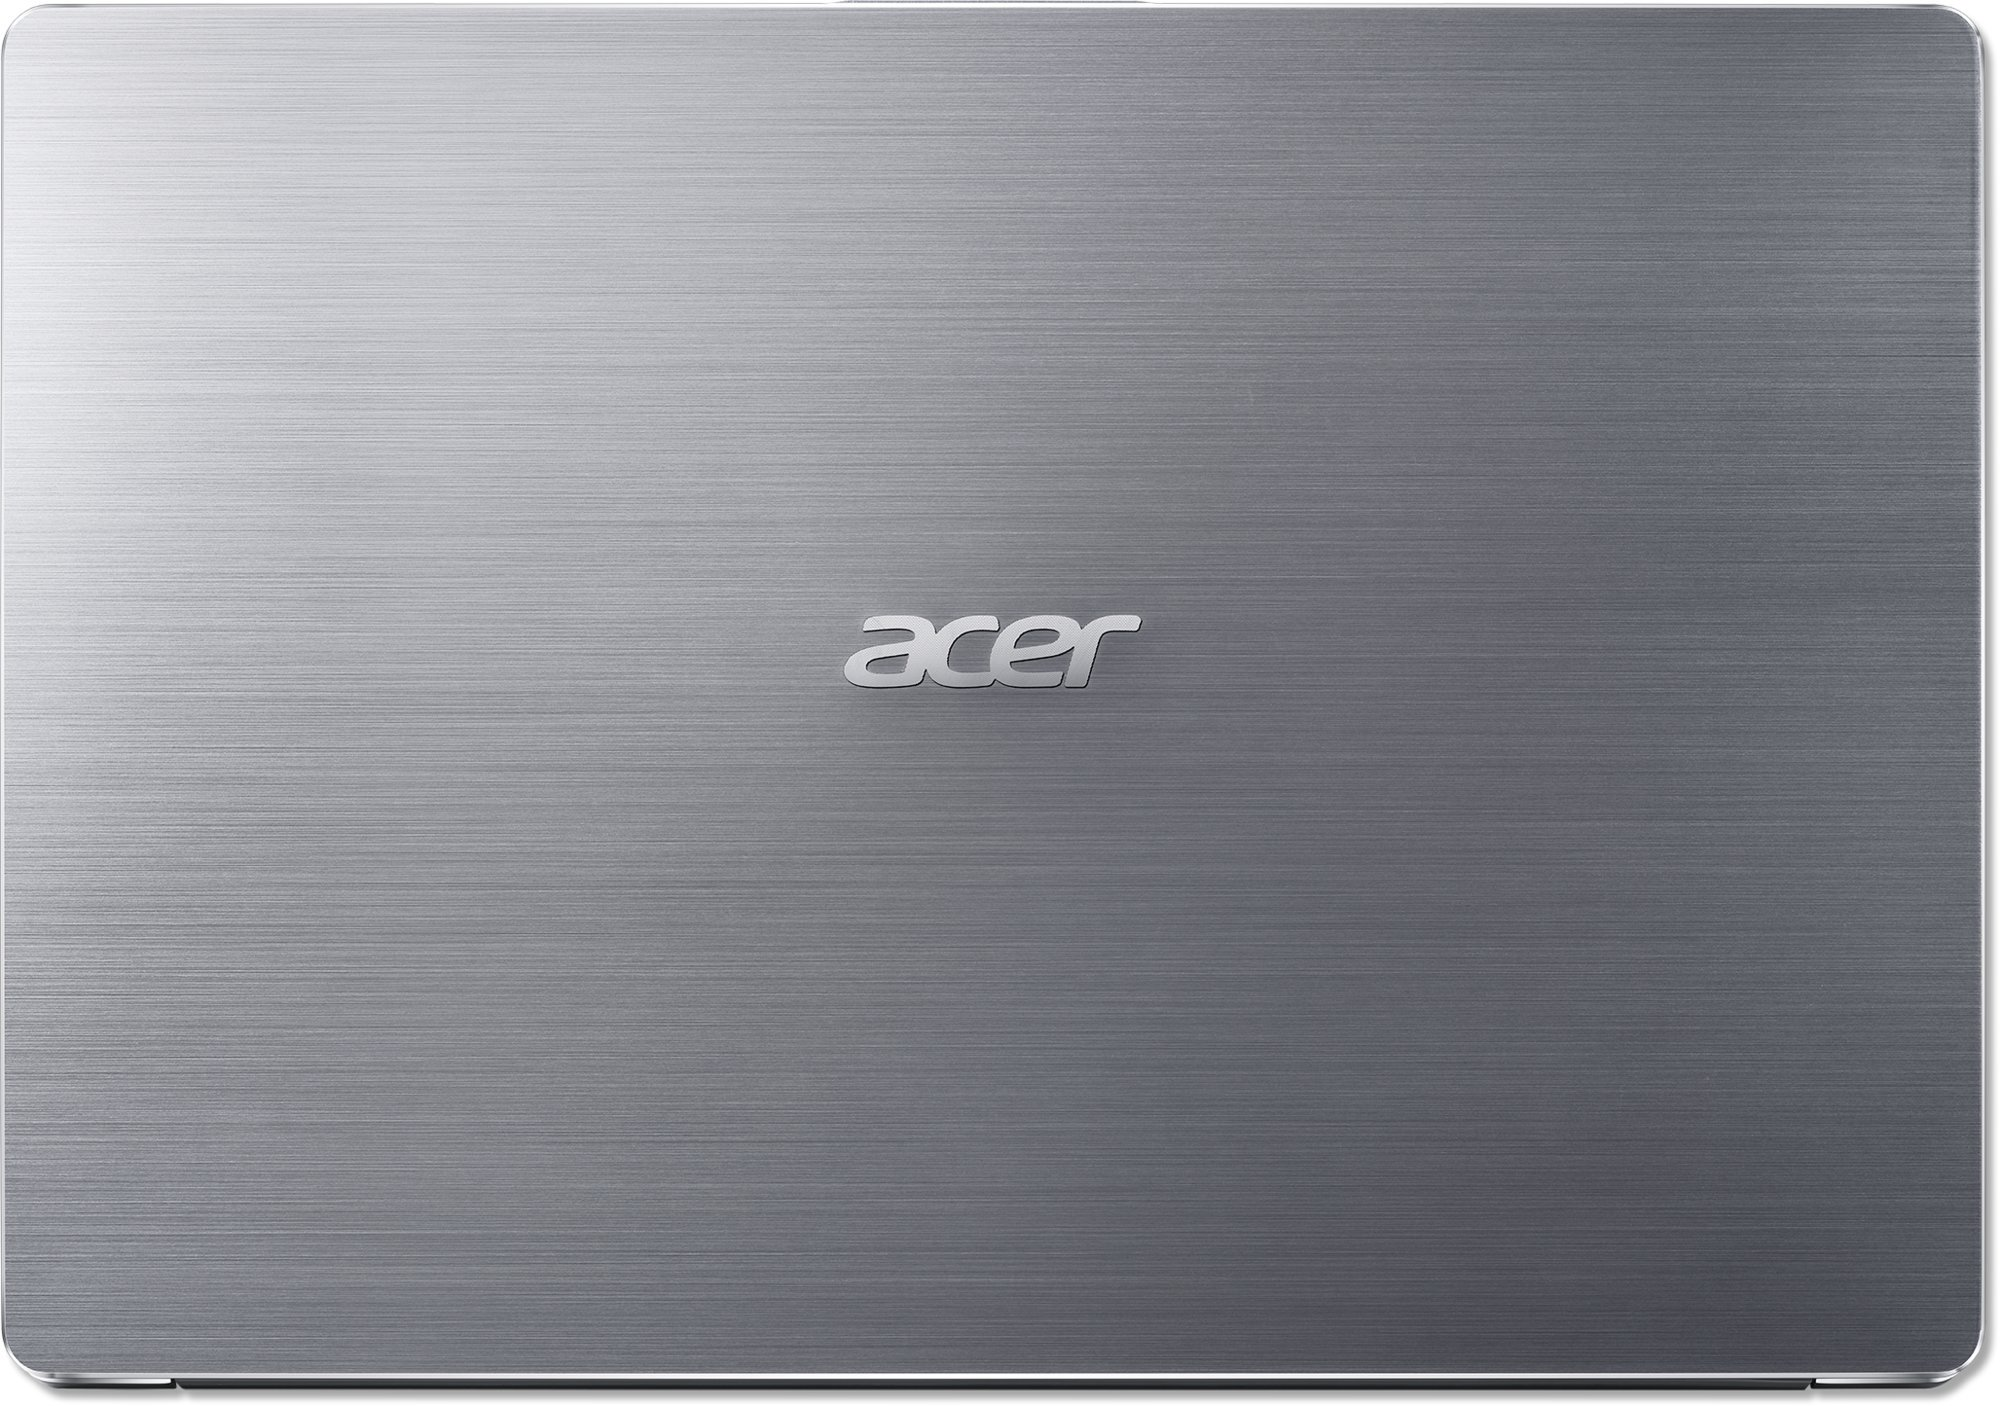 Acer Swift 3 SF314-55-50MX